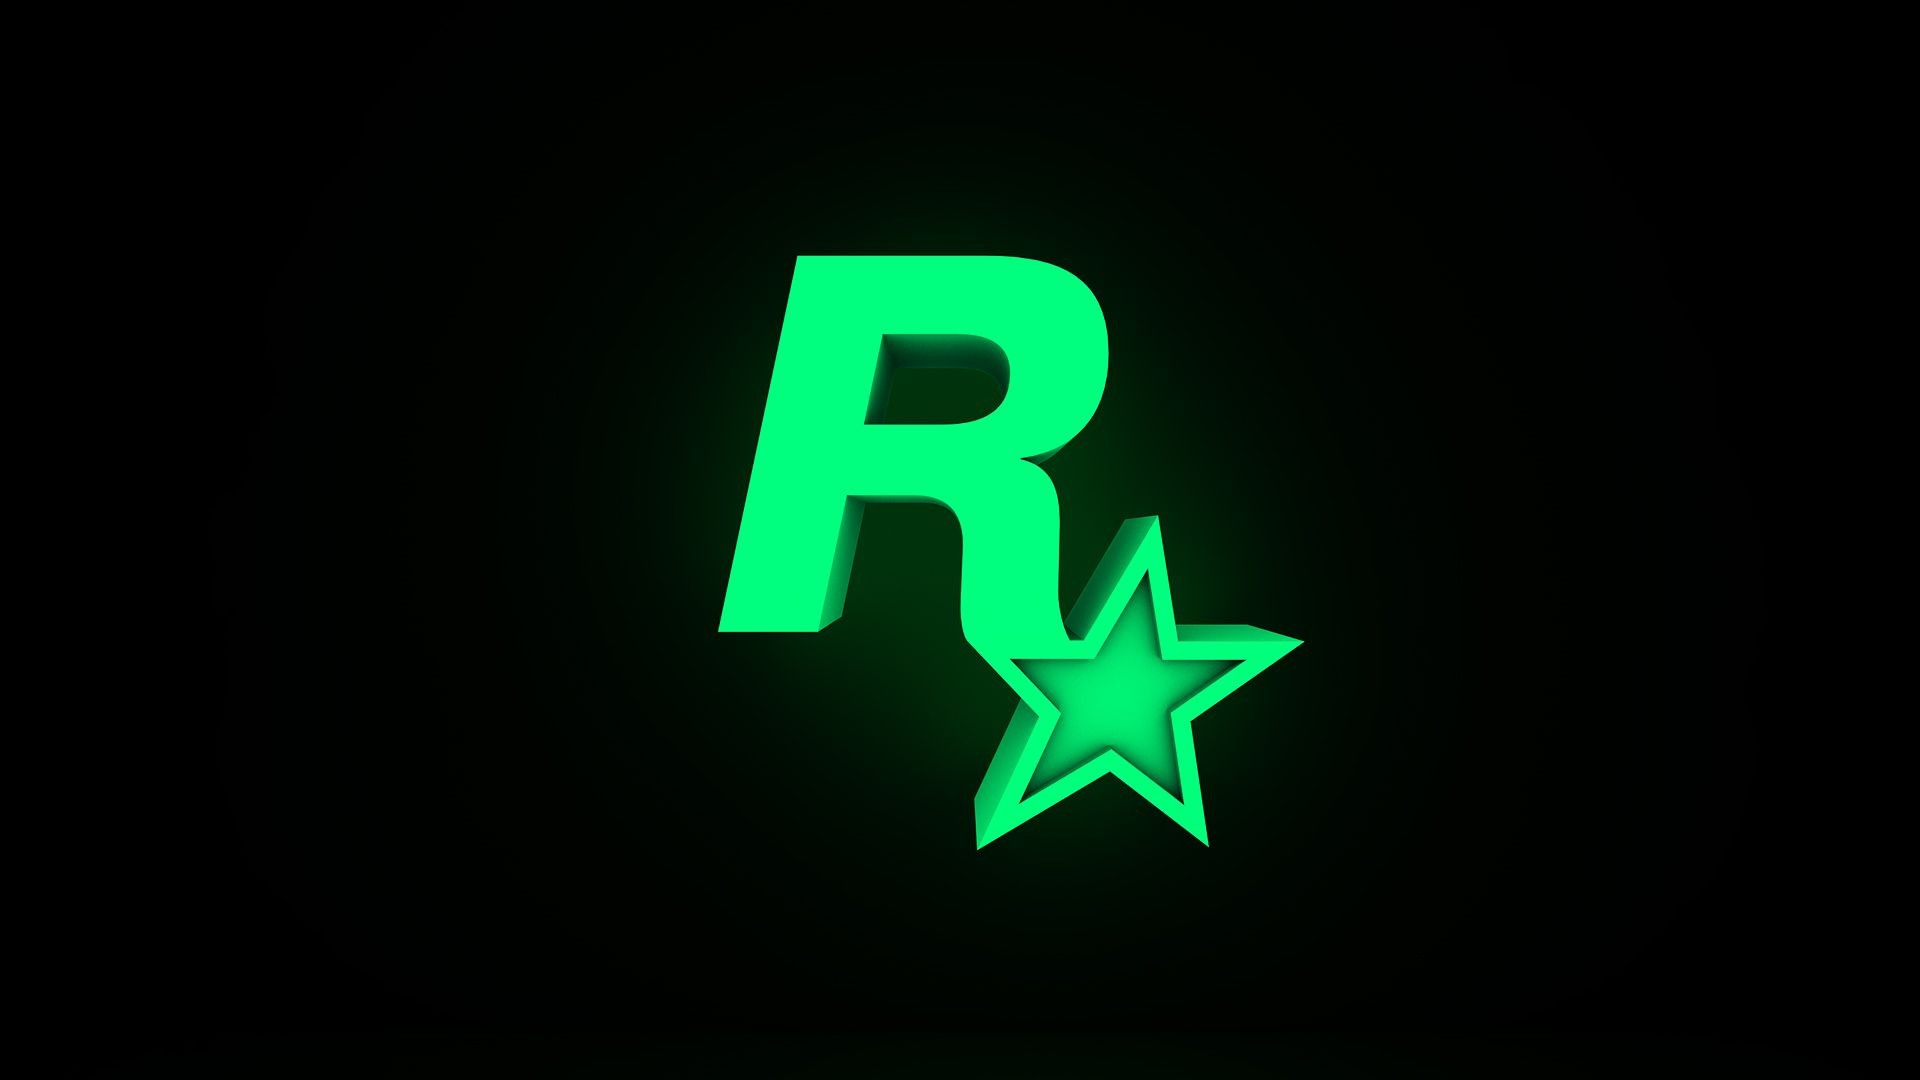 video games rockstar games logo